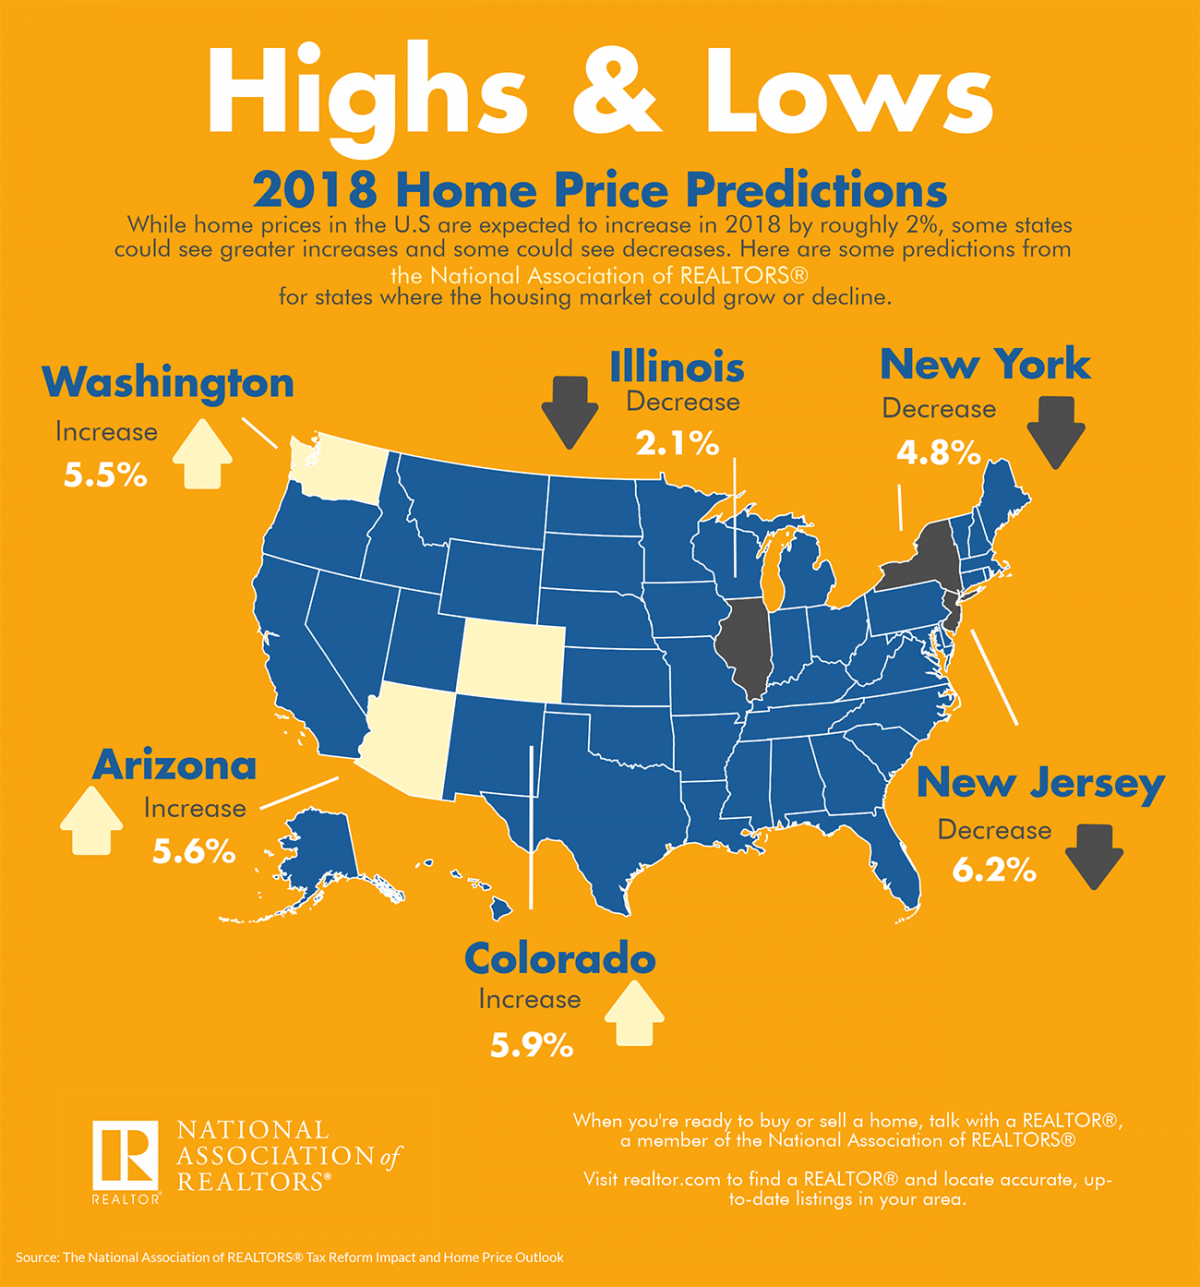 Highs and Lows: 2018 Home Price Predictions infographic